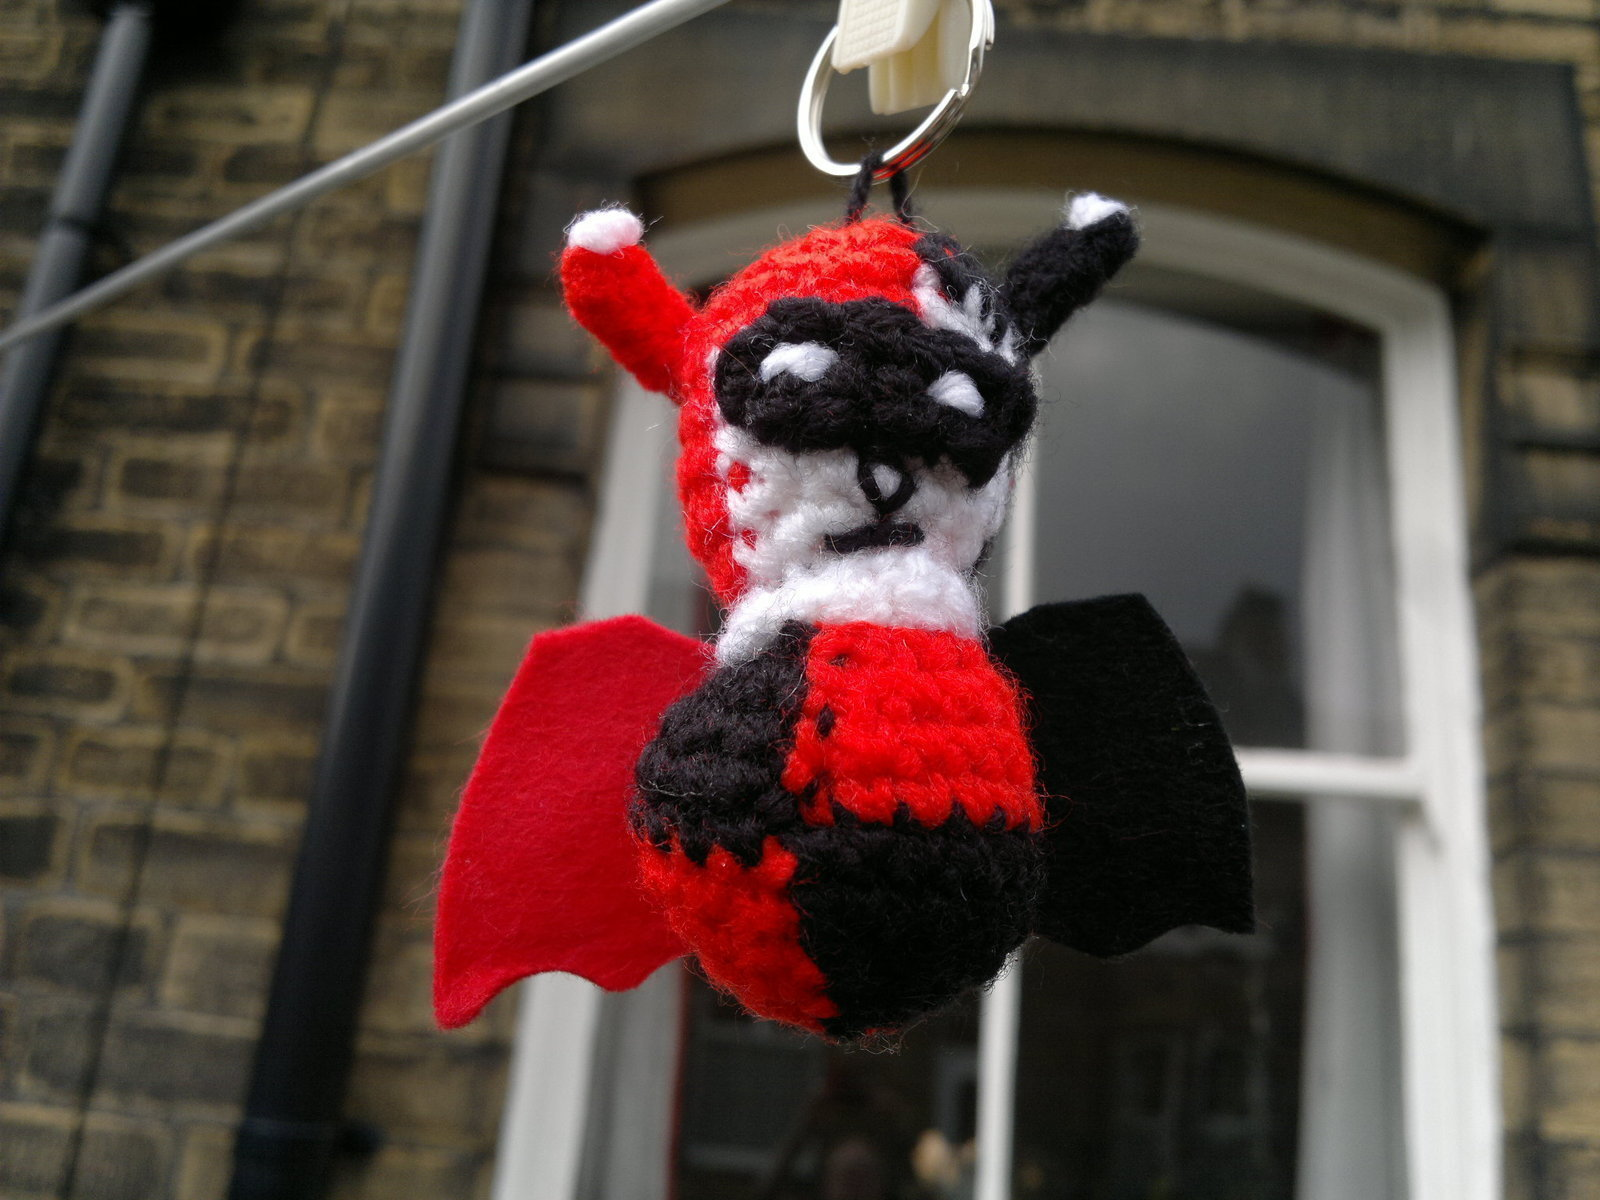 Joker Make Up Harley Quinn Bat Keyring · How To Stitch A Knit Or Crochet